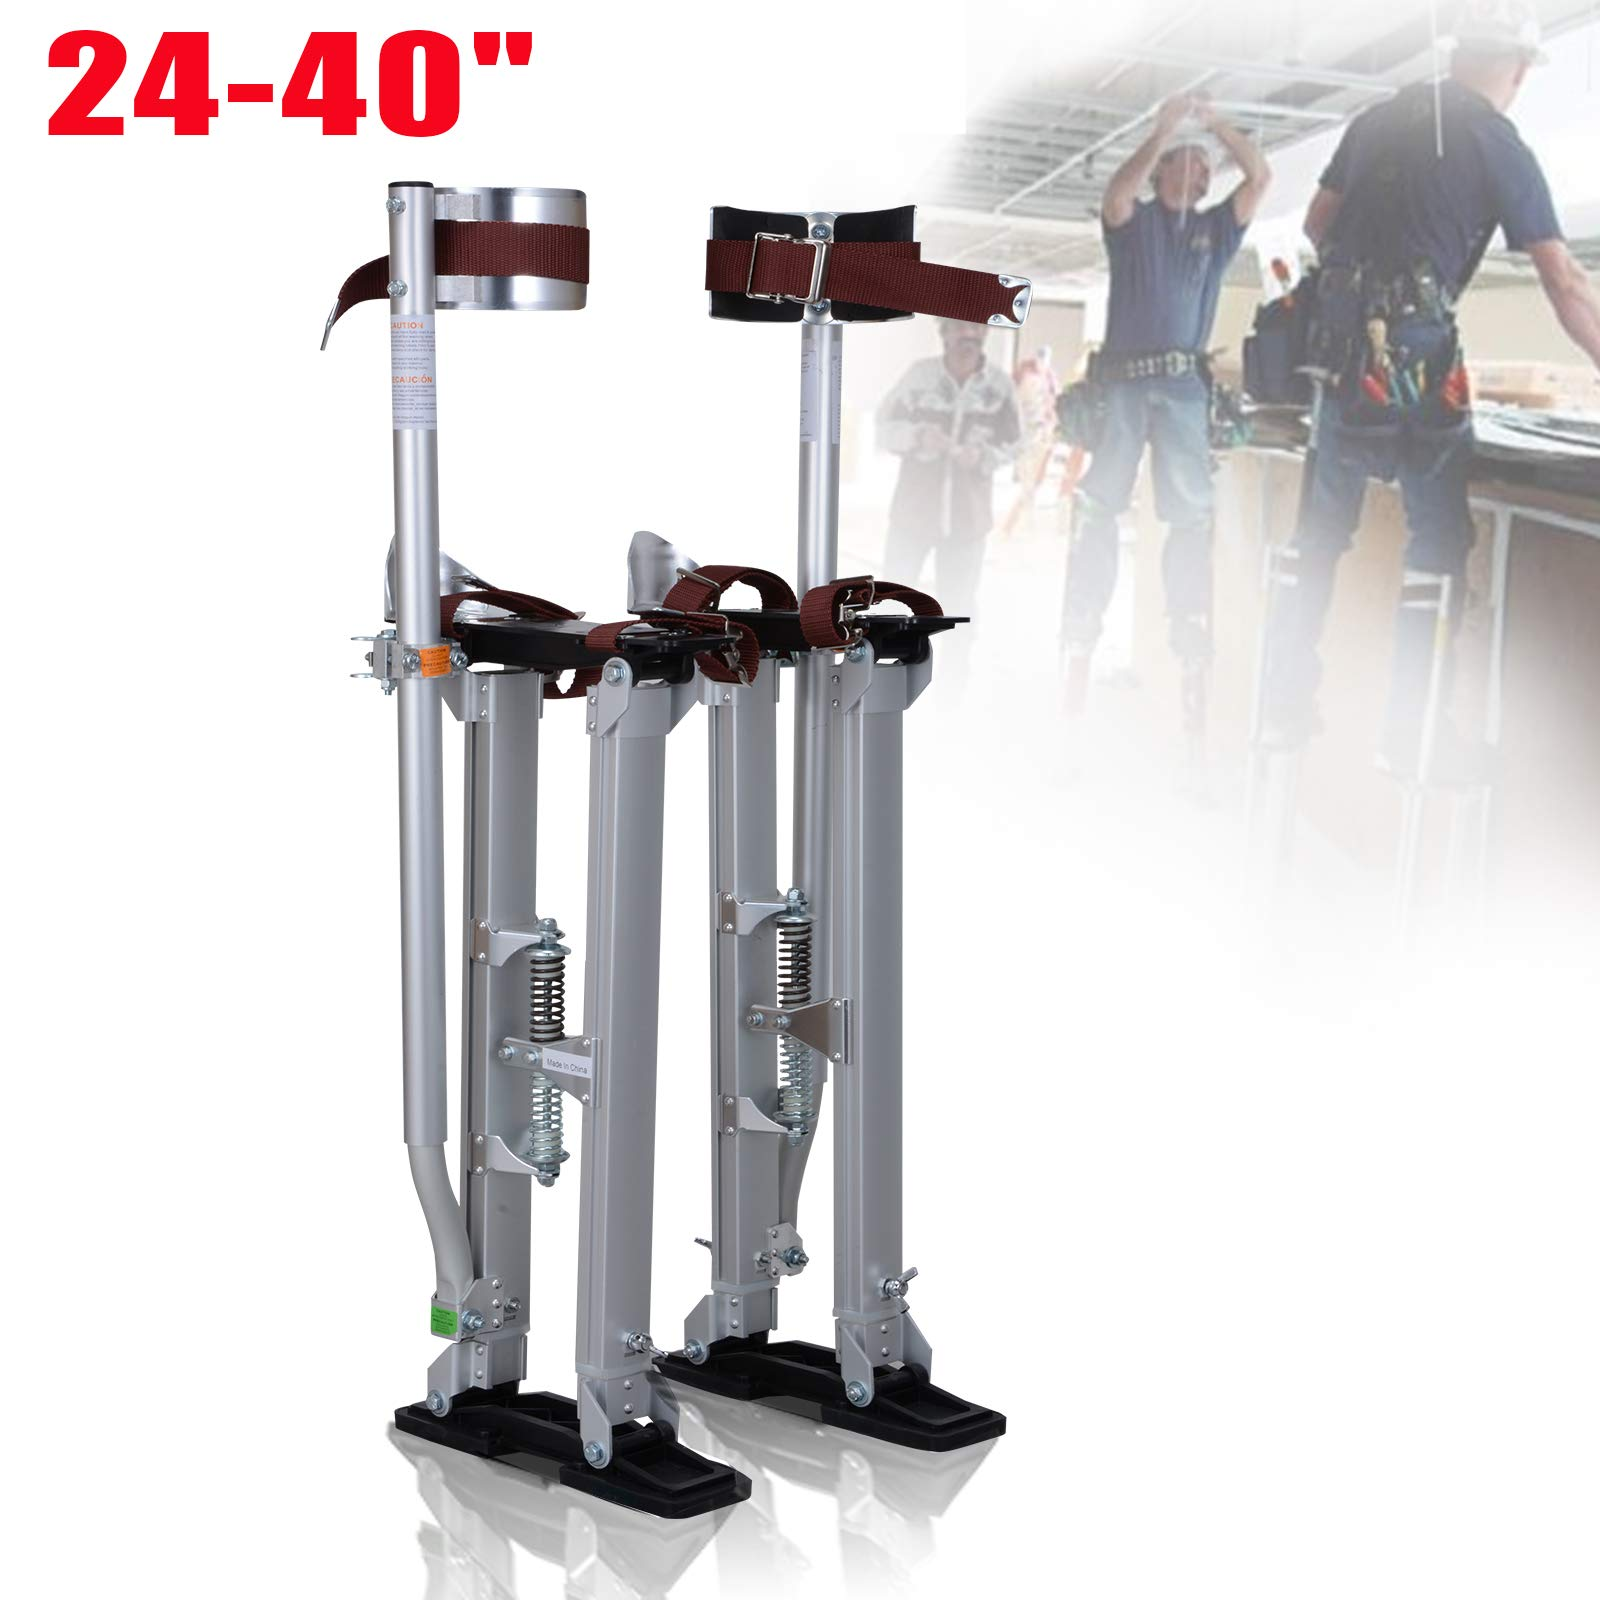 Voilamart Drywall Stilts 24''-40'' Adjustable Aluminum Painting Stilts Lifts Tool for Painter Taping Cleaning Ceiling Finishing - Silver by Voilamart